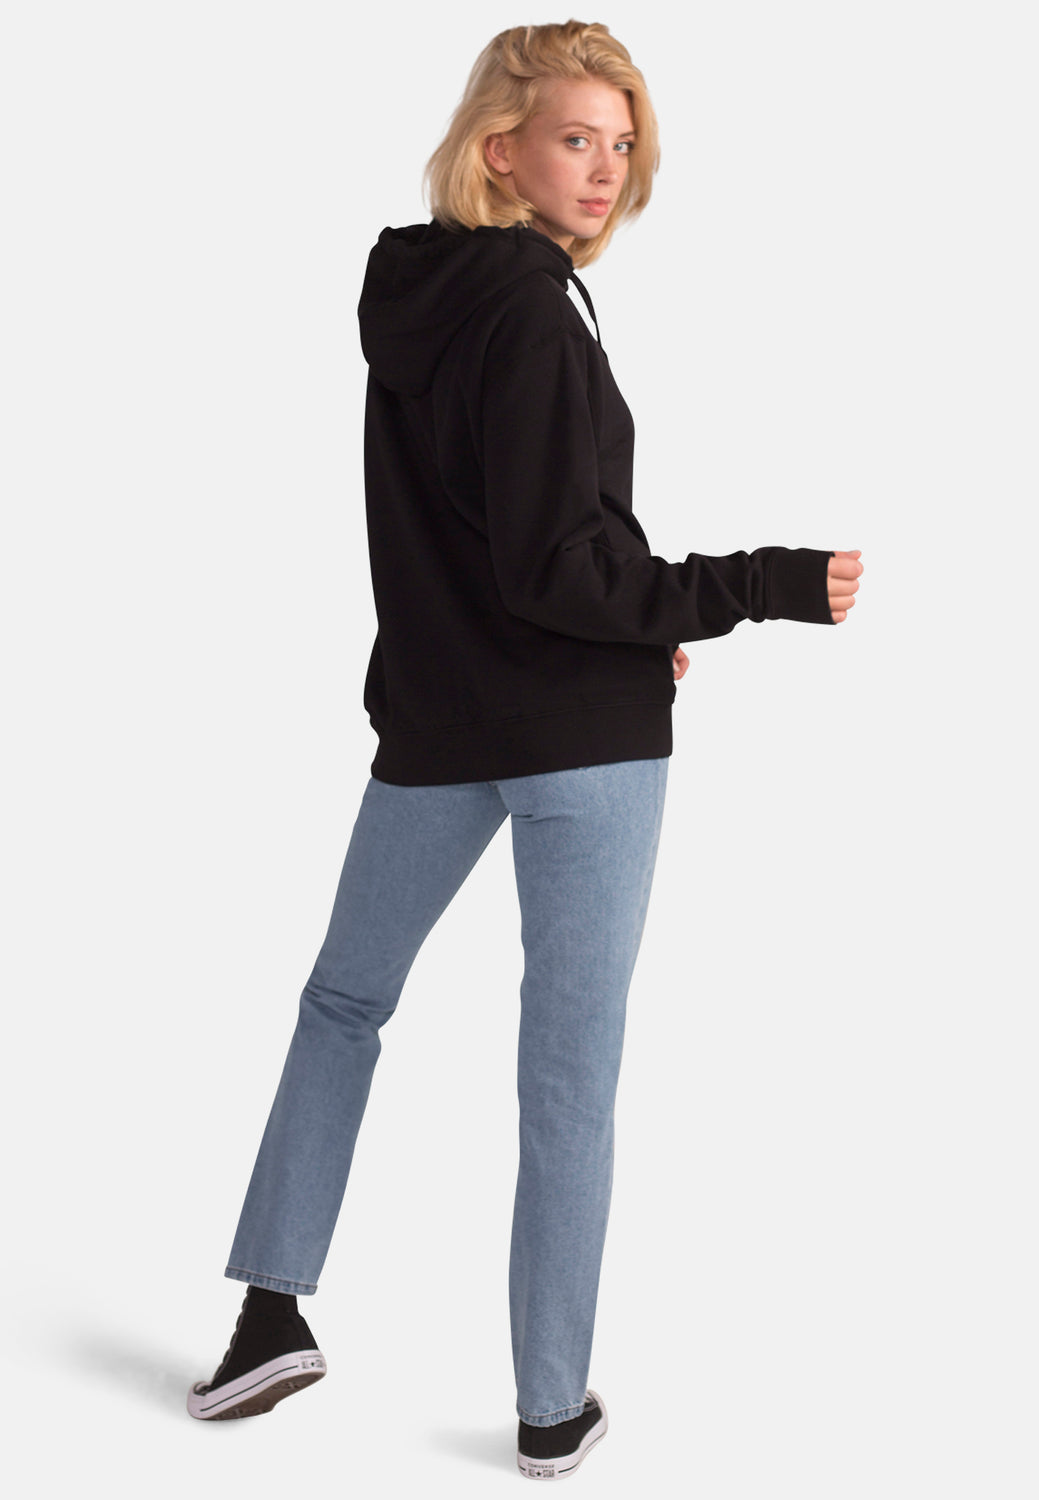 Women's Organic Cotton Oversized Black Ziphood - Monkee Genes Organic Jeans Denim - Women's Hoodie Monkee Genes Official  Monkee Genes Official